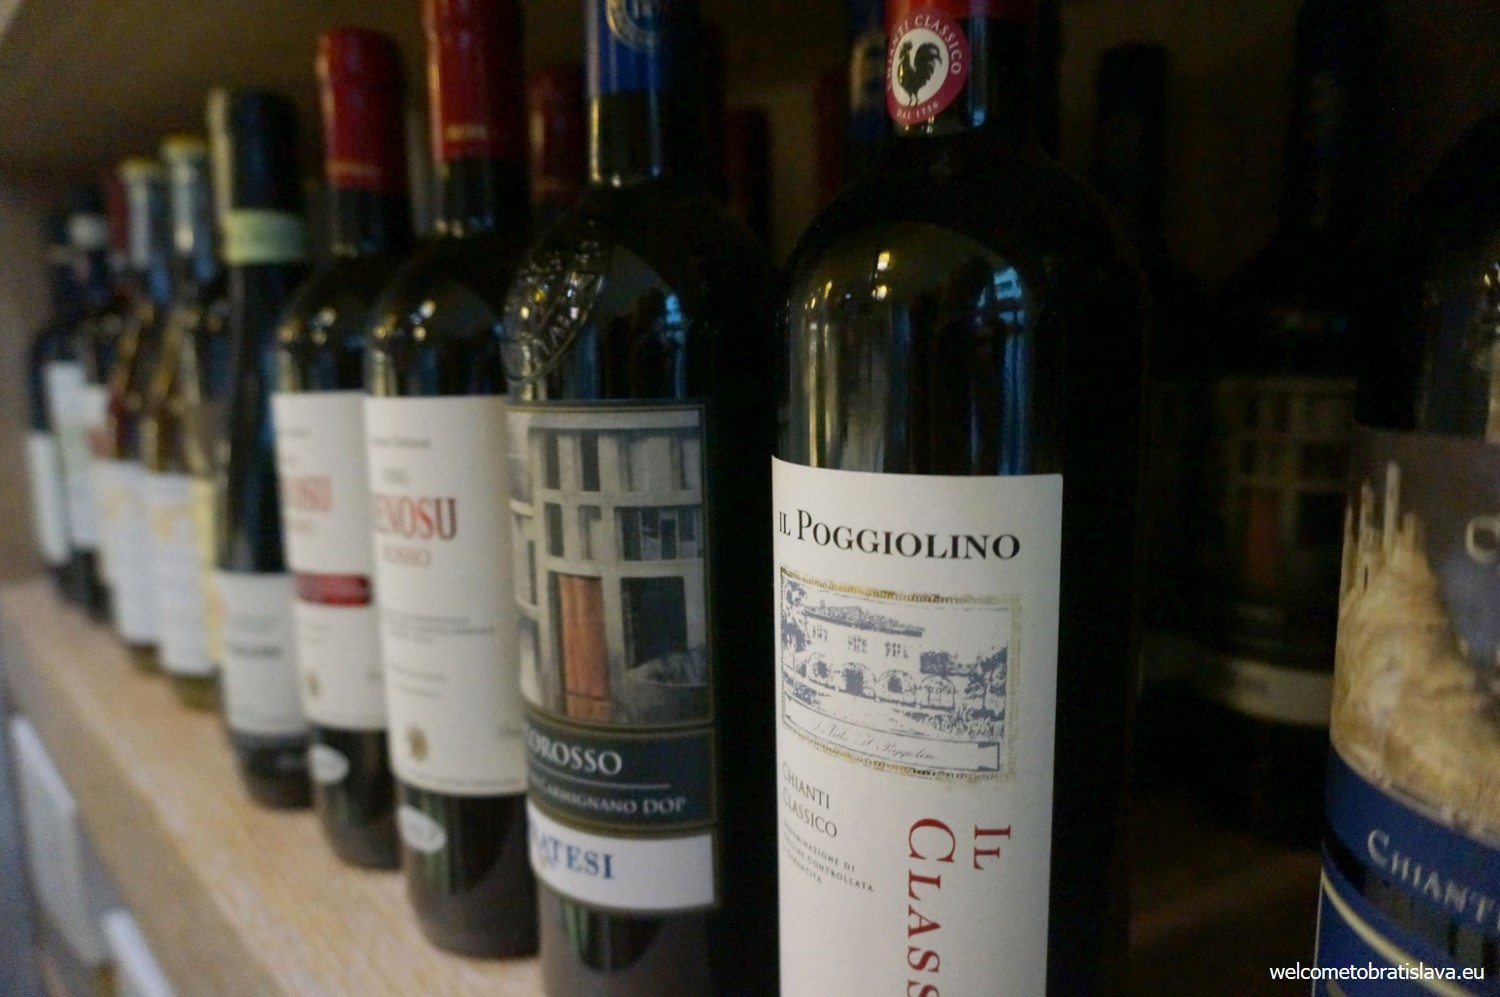 Fancy a glass of good Italian wine? Now you know where to buy it!